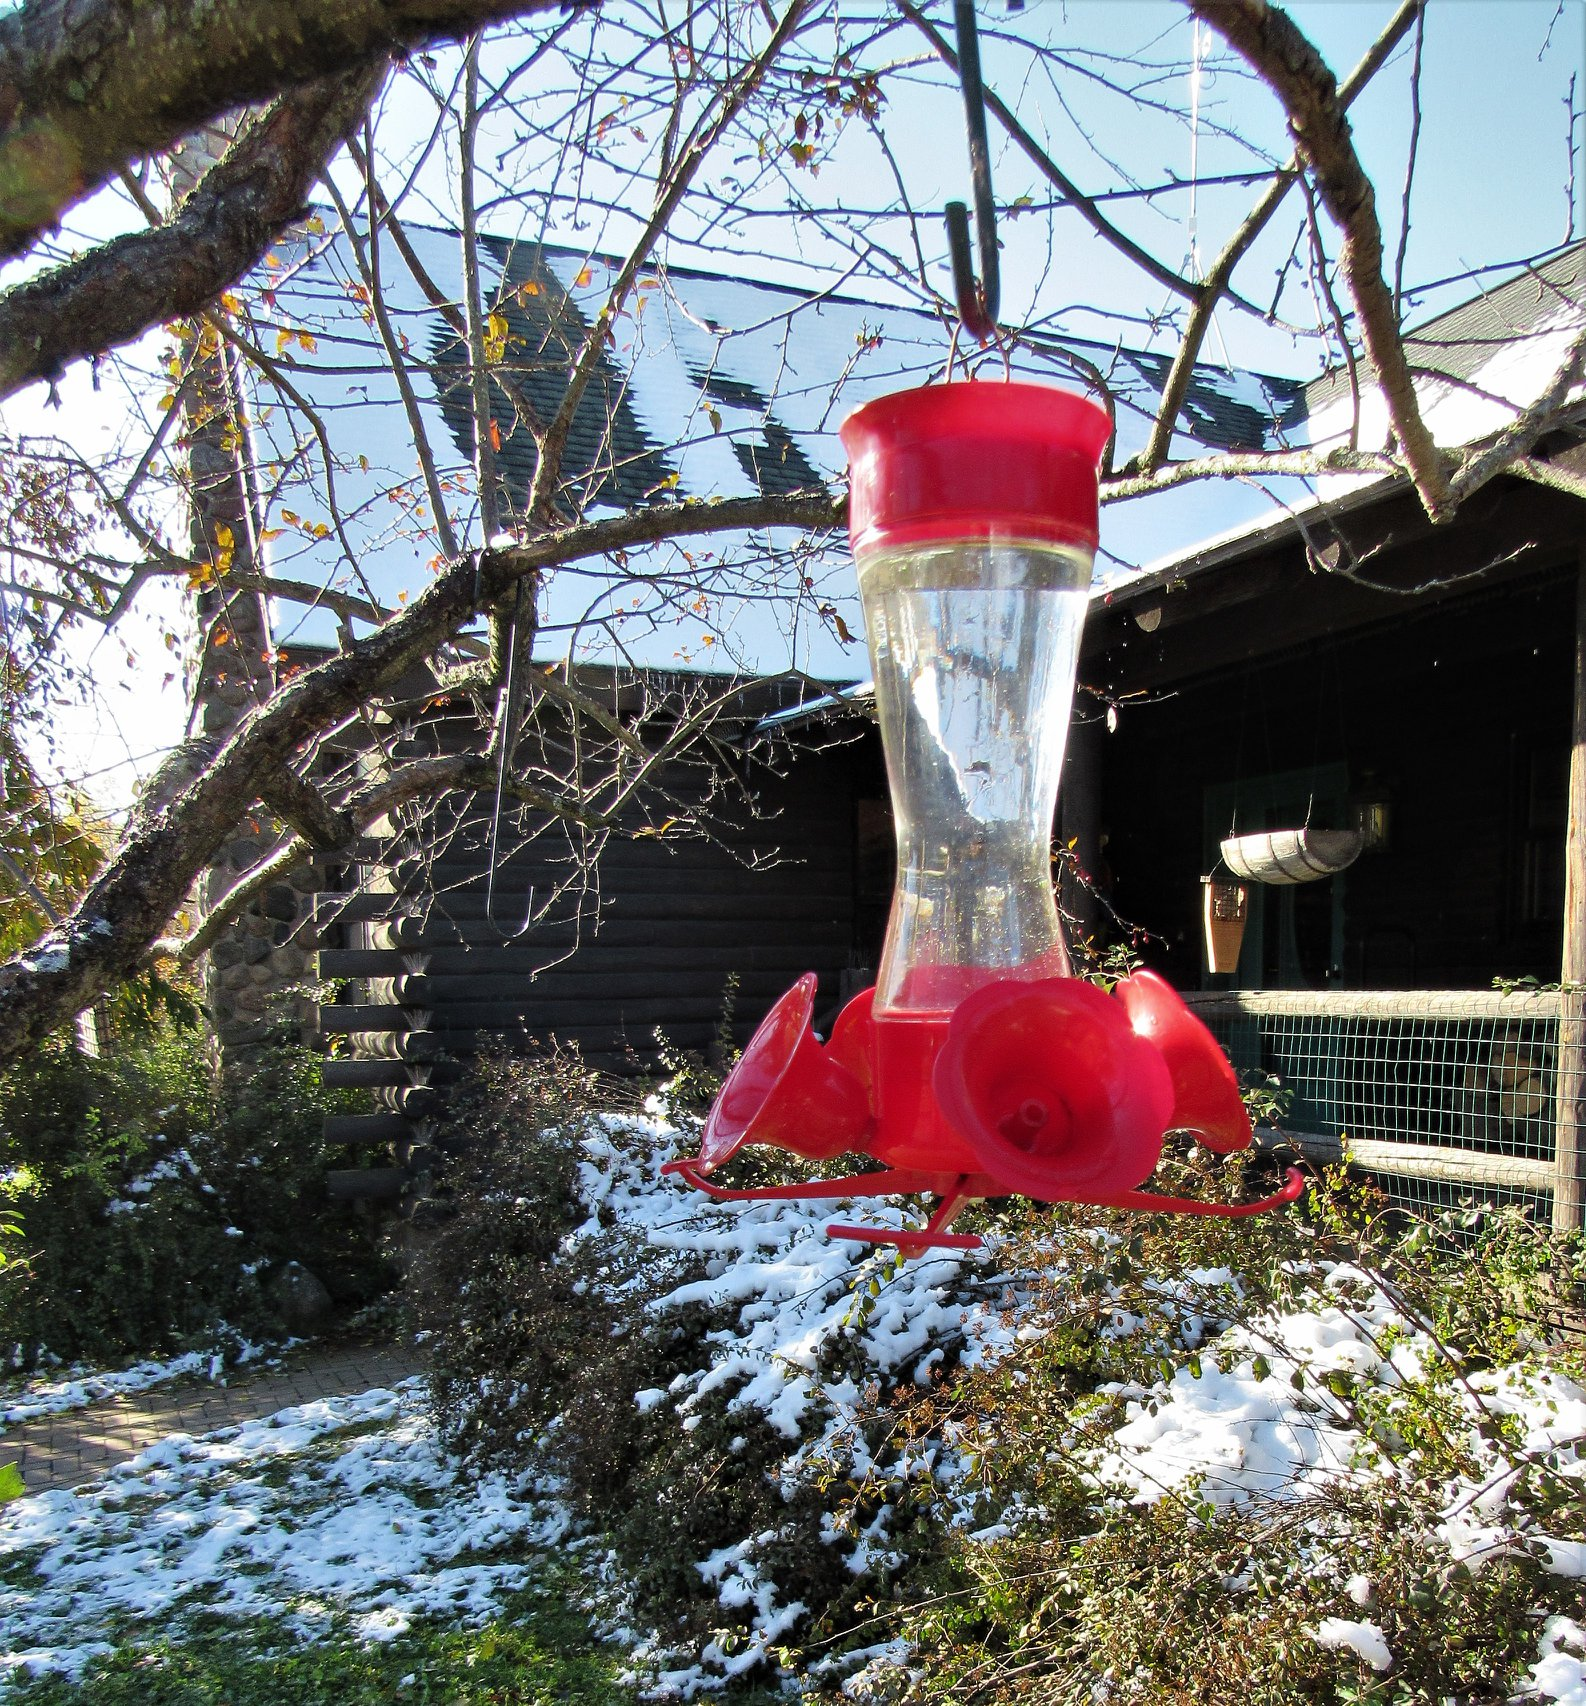 Snow on the roof and on the ground but hummingbirds remain in our area. Keep your feeder out!!